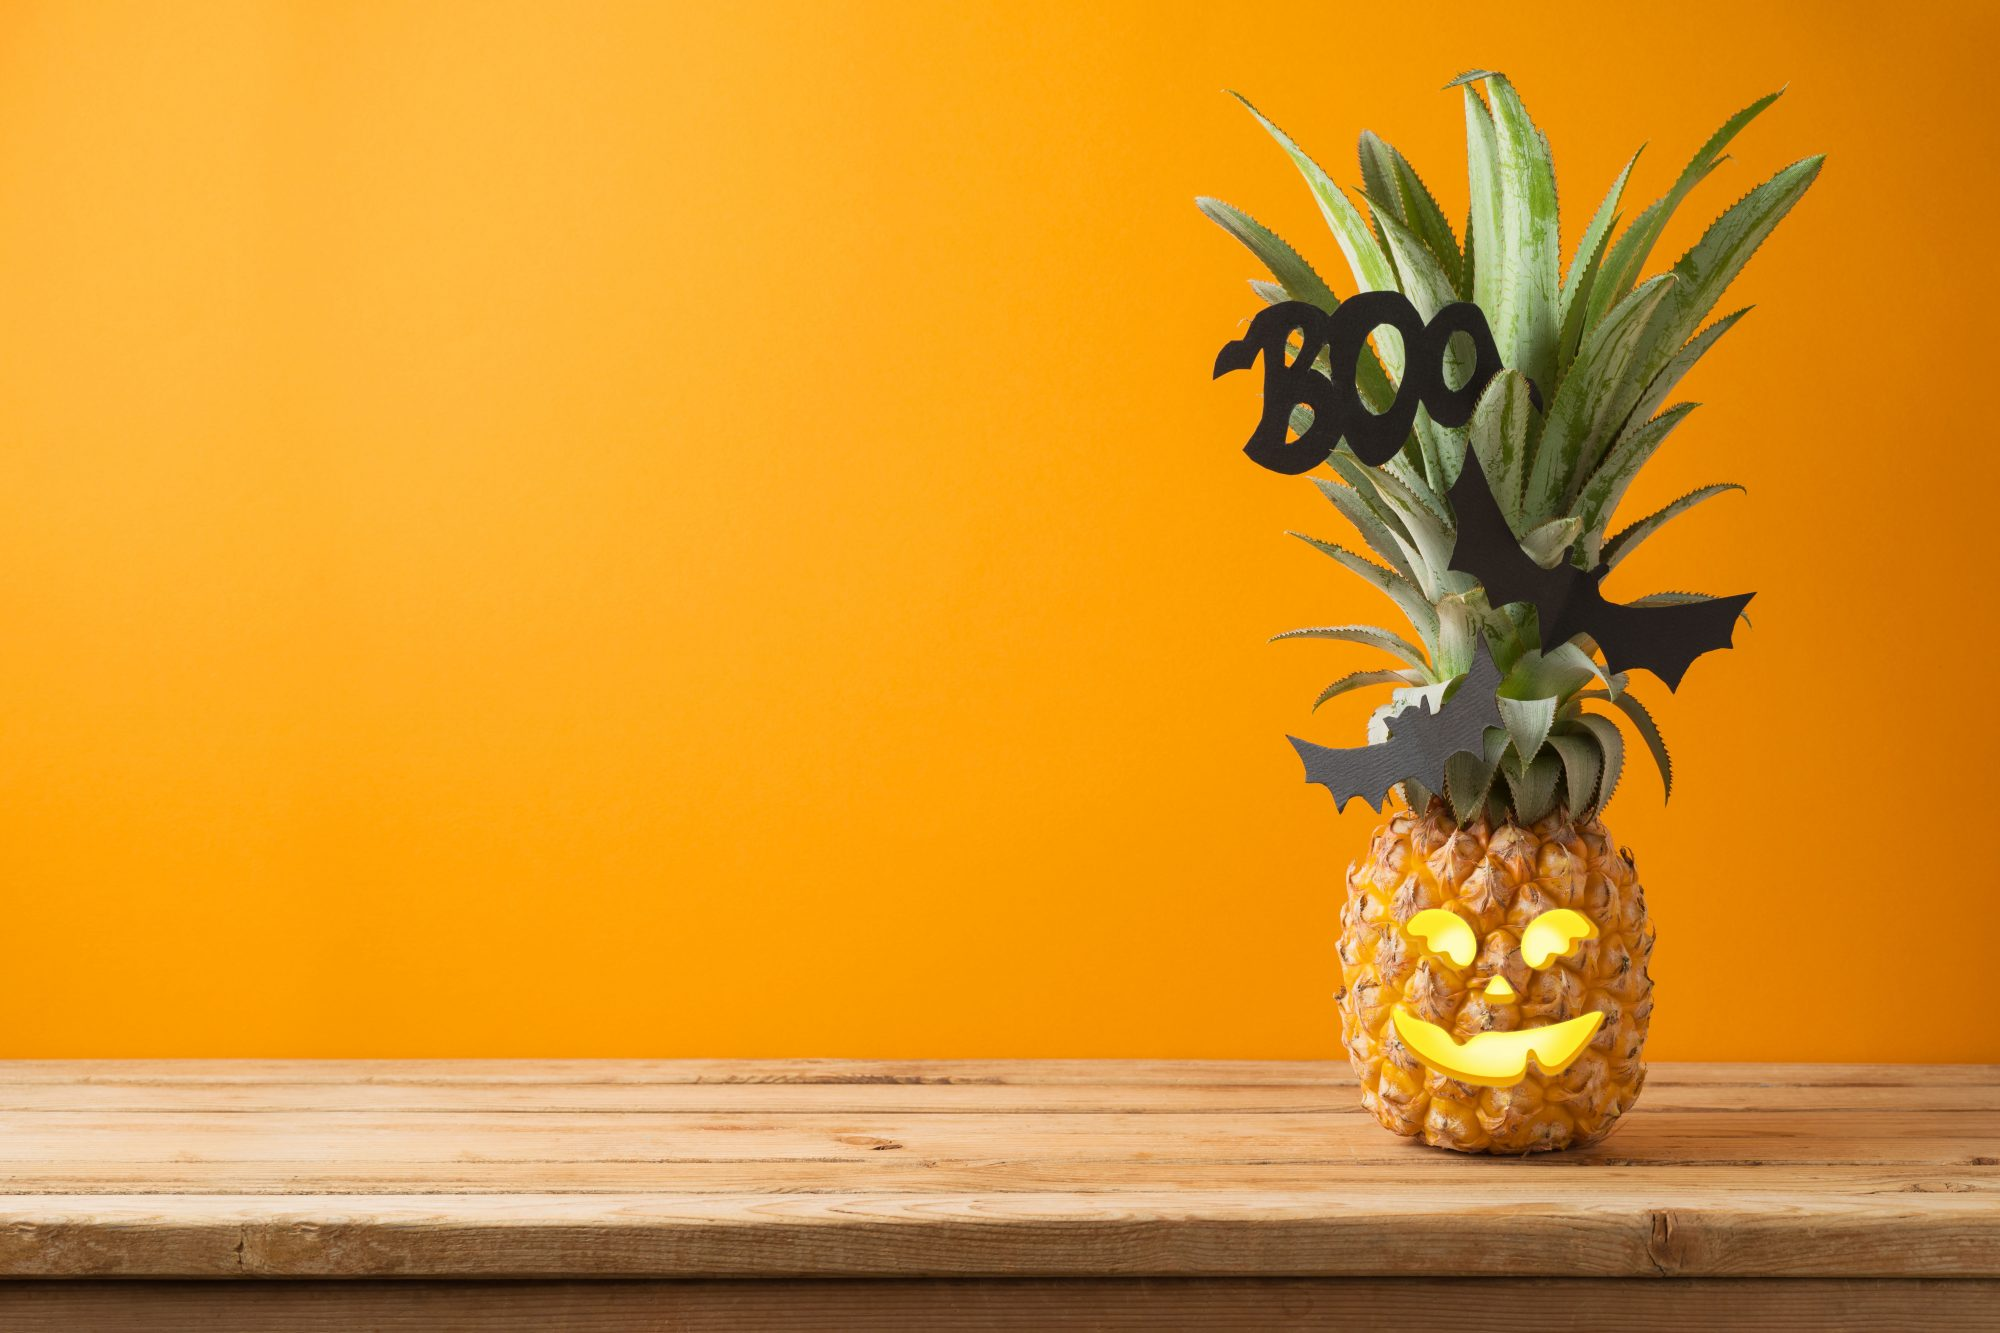 Pineapple jack o lantern on orange background with wooden table